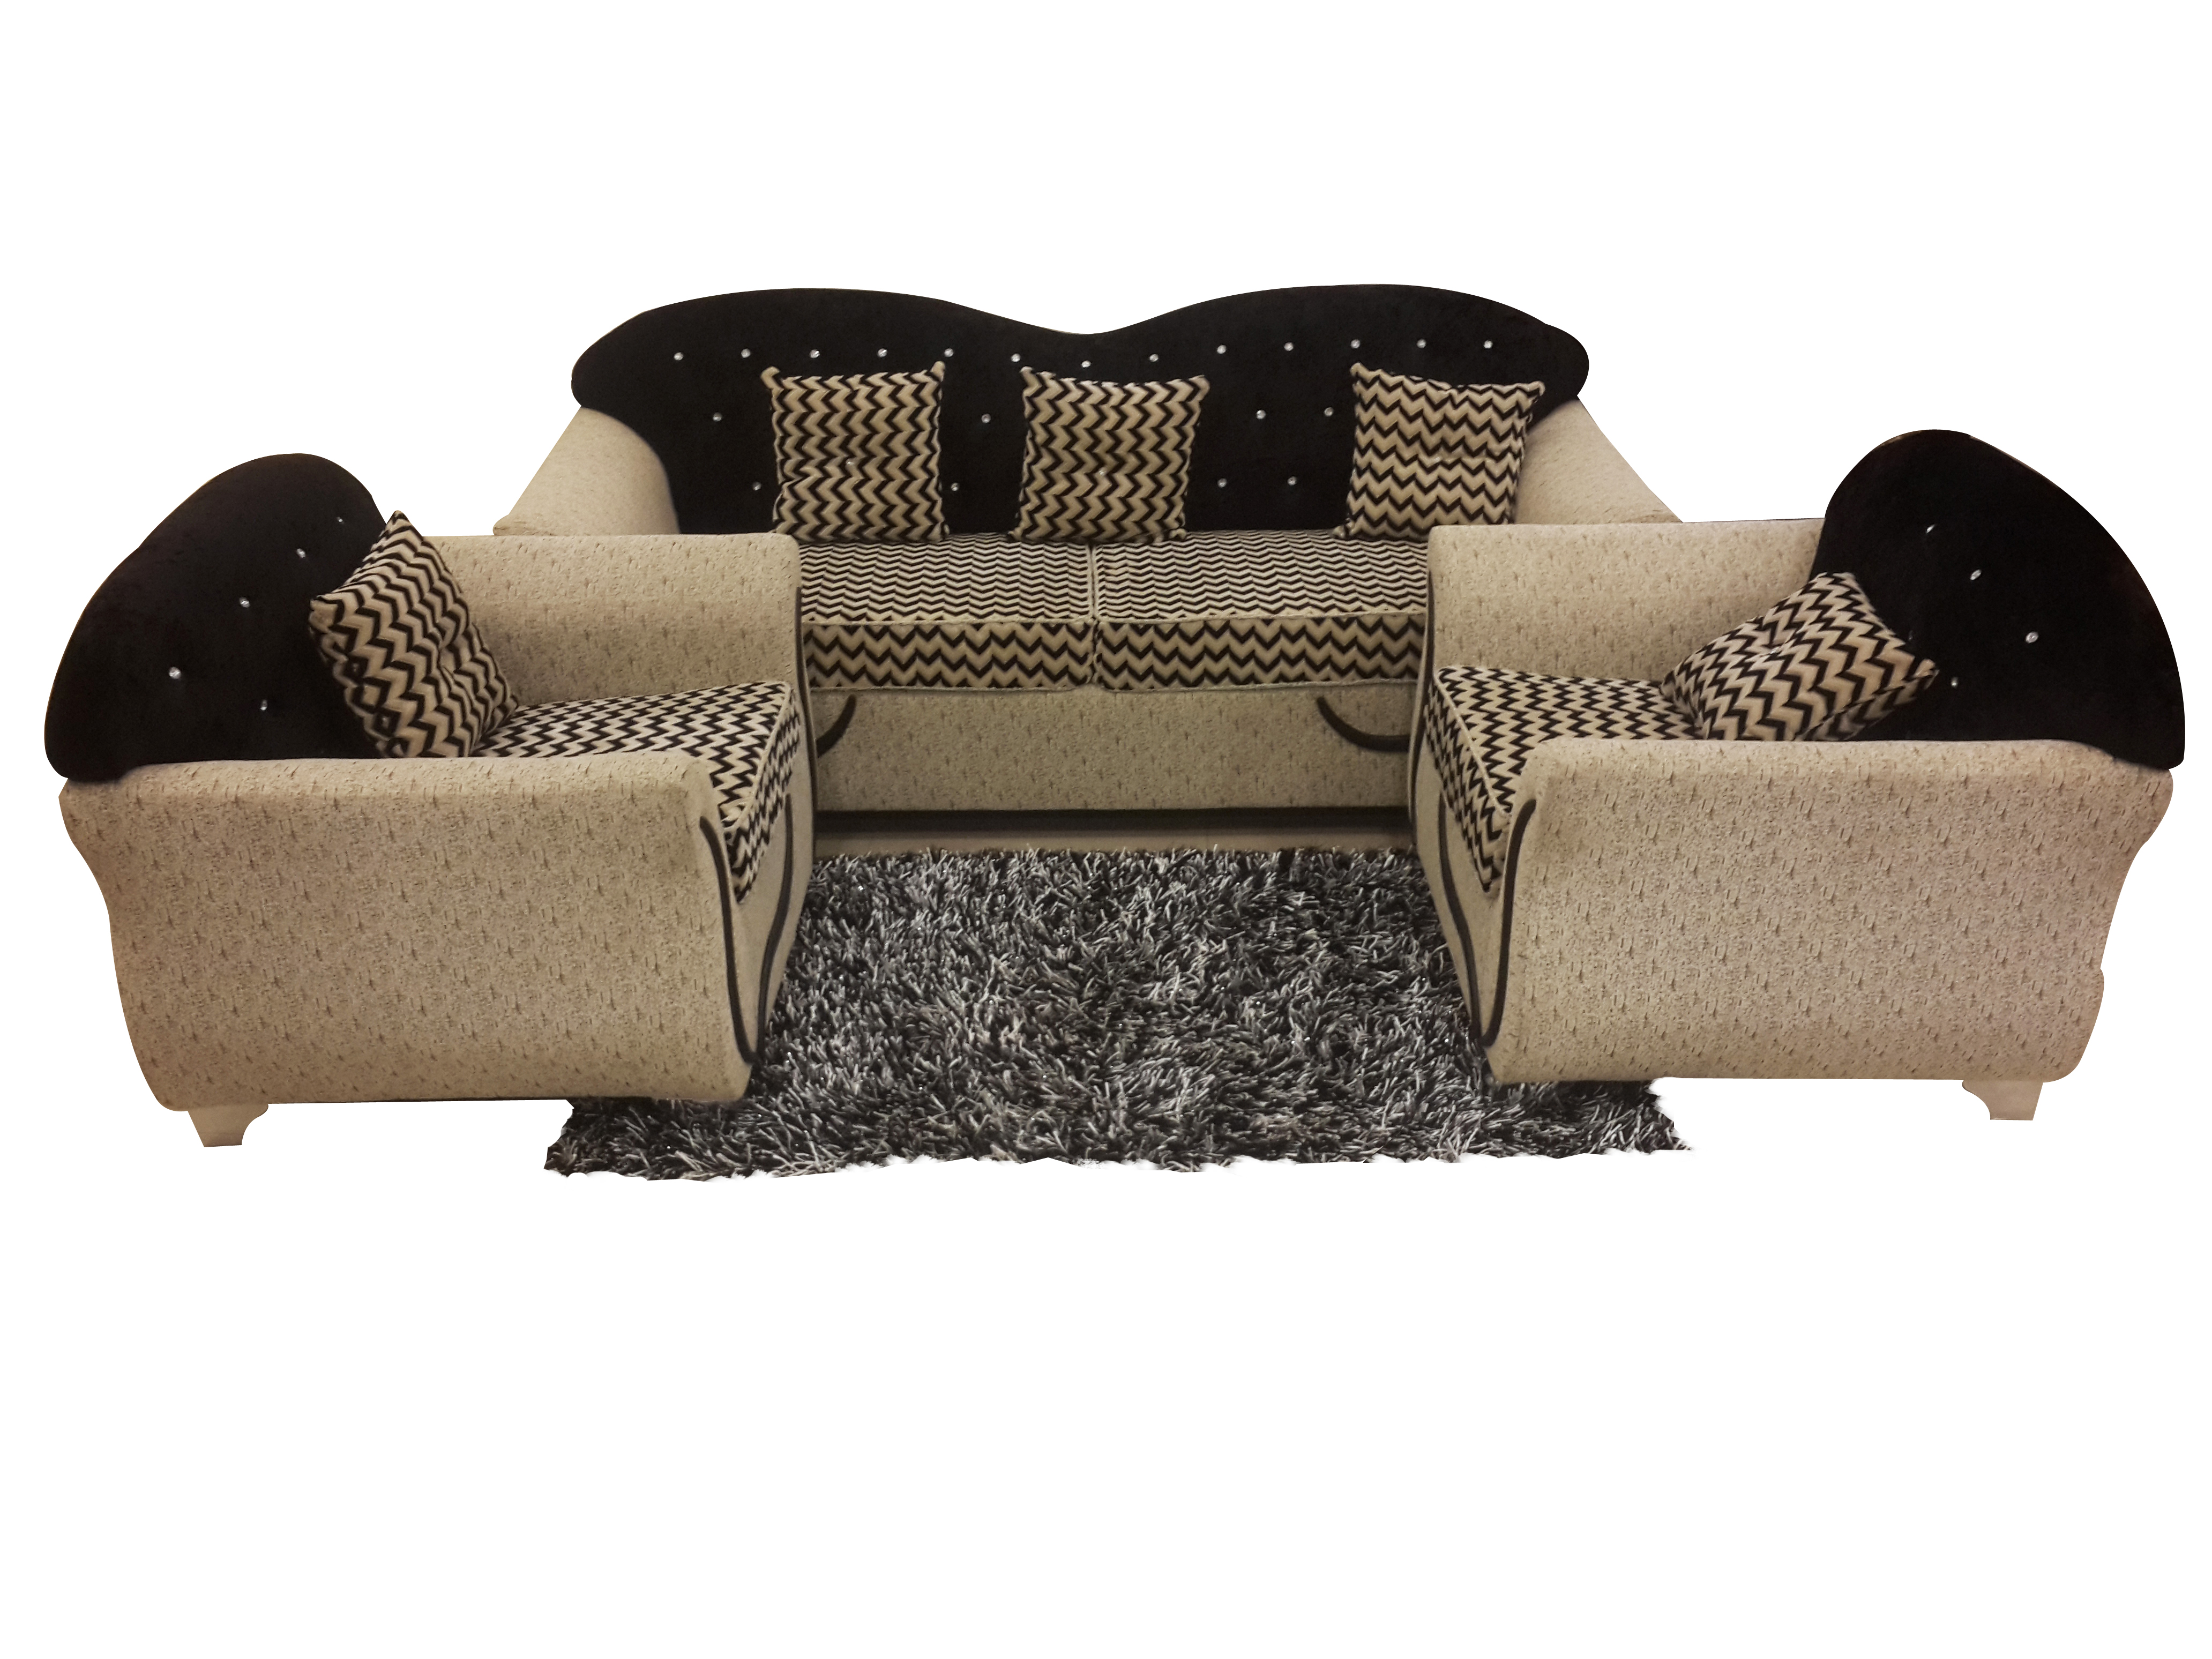 Marvelous Osb8 Lumia 3 1 1 Sofa Set Beatyapartments Chair Design Images Beatyapartmentscom